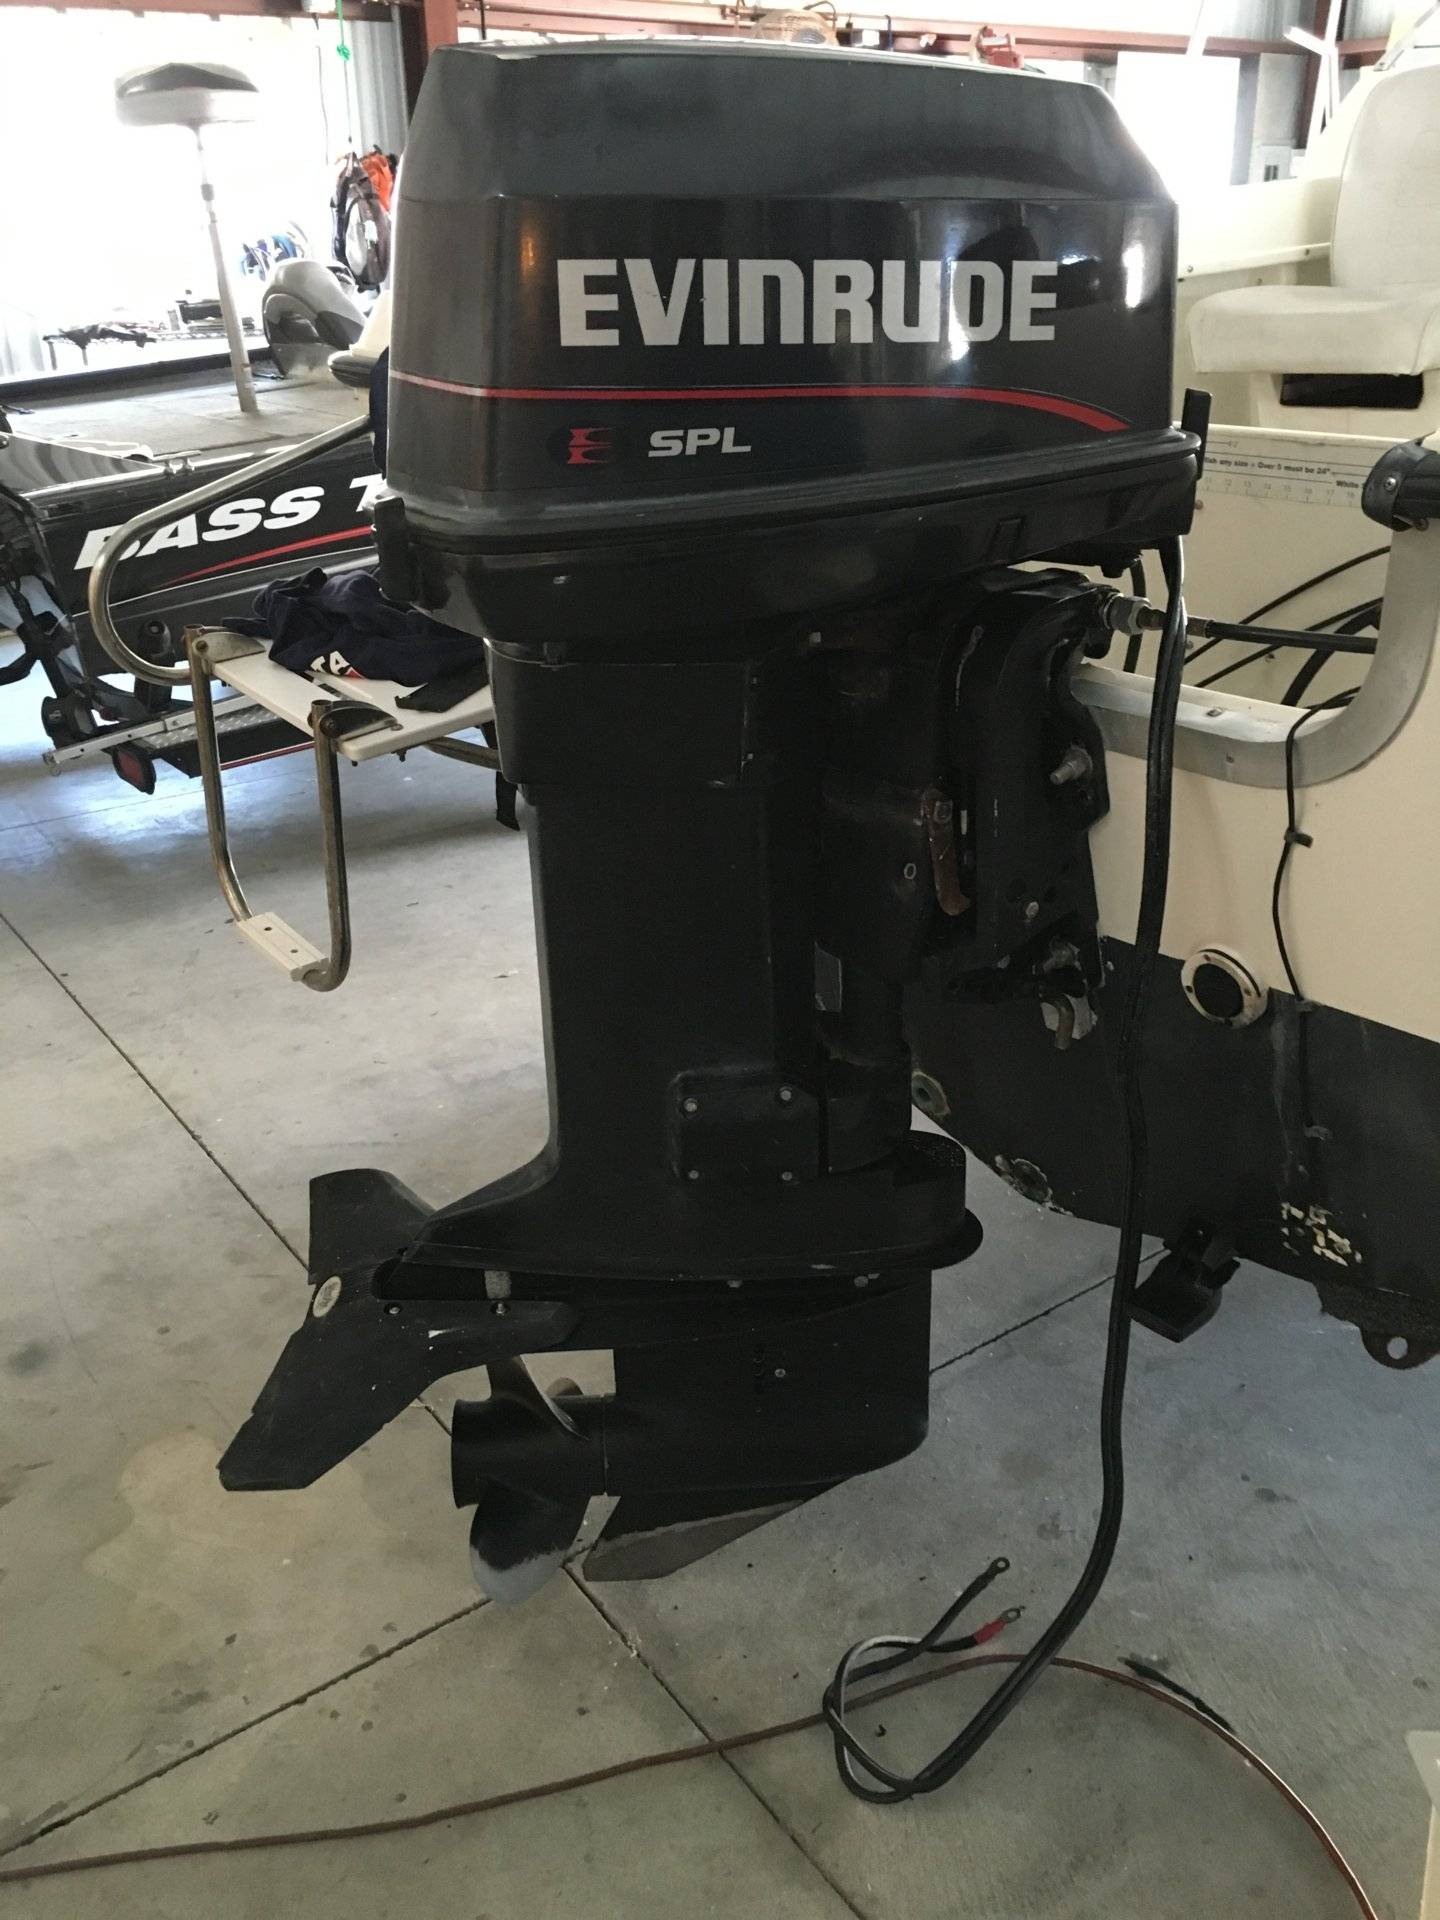 Evinrude 25 Hp >> 1996 Evinrude 112hp Outboard $300 | Bloodydecks